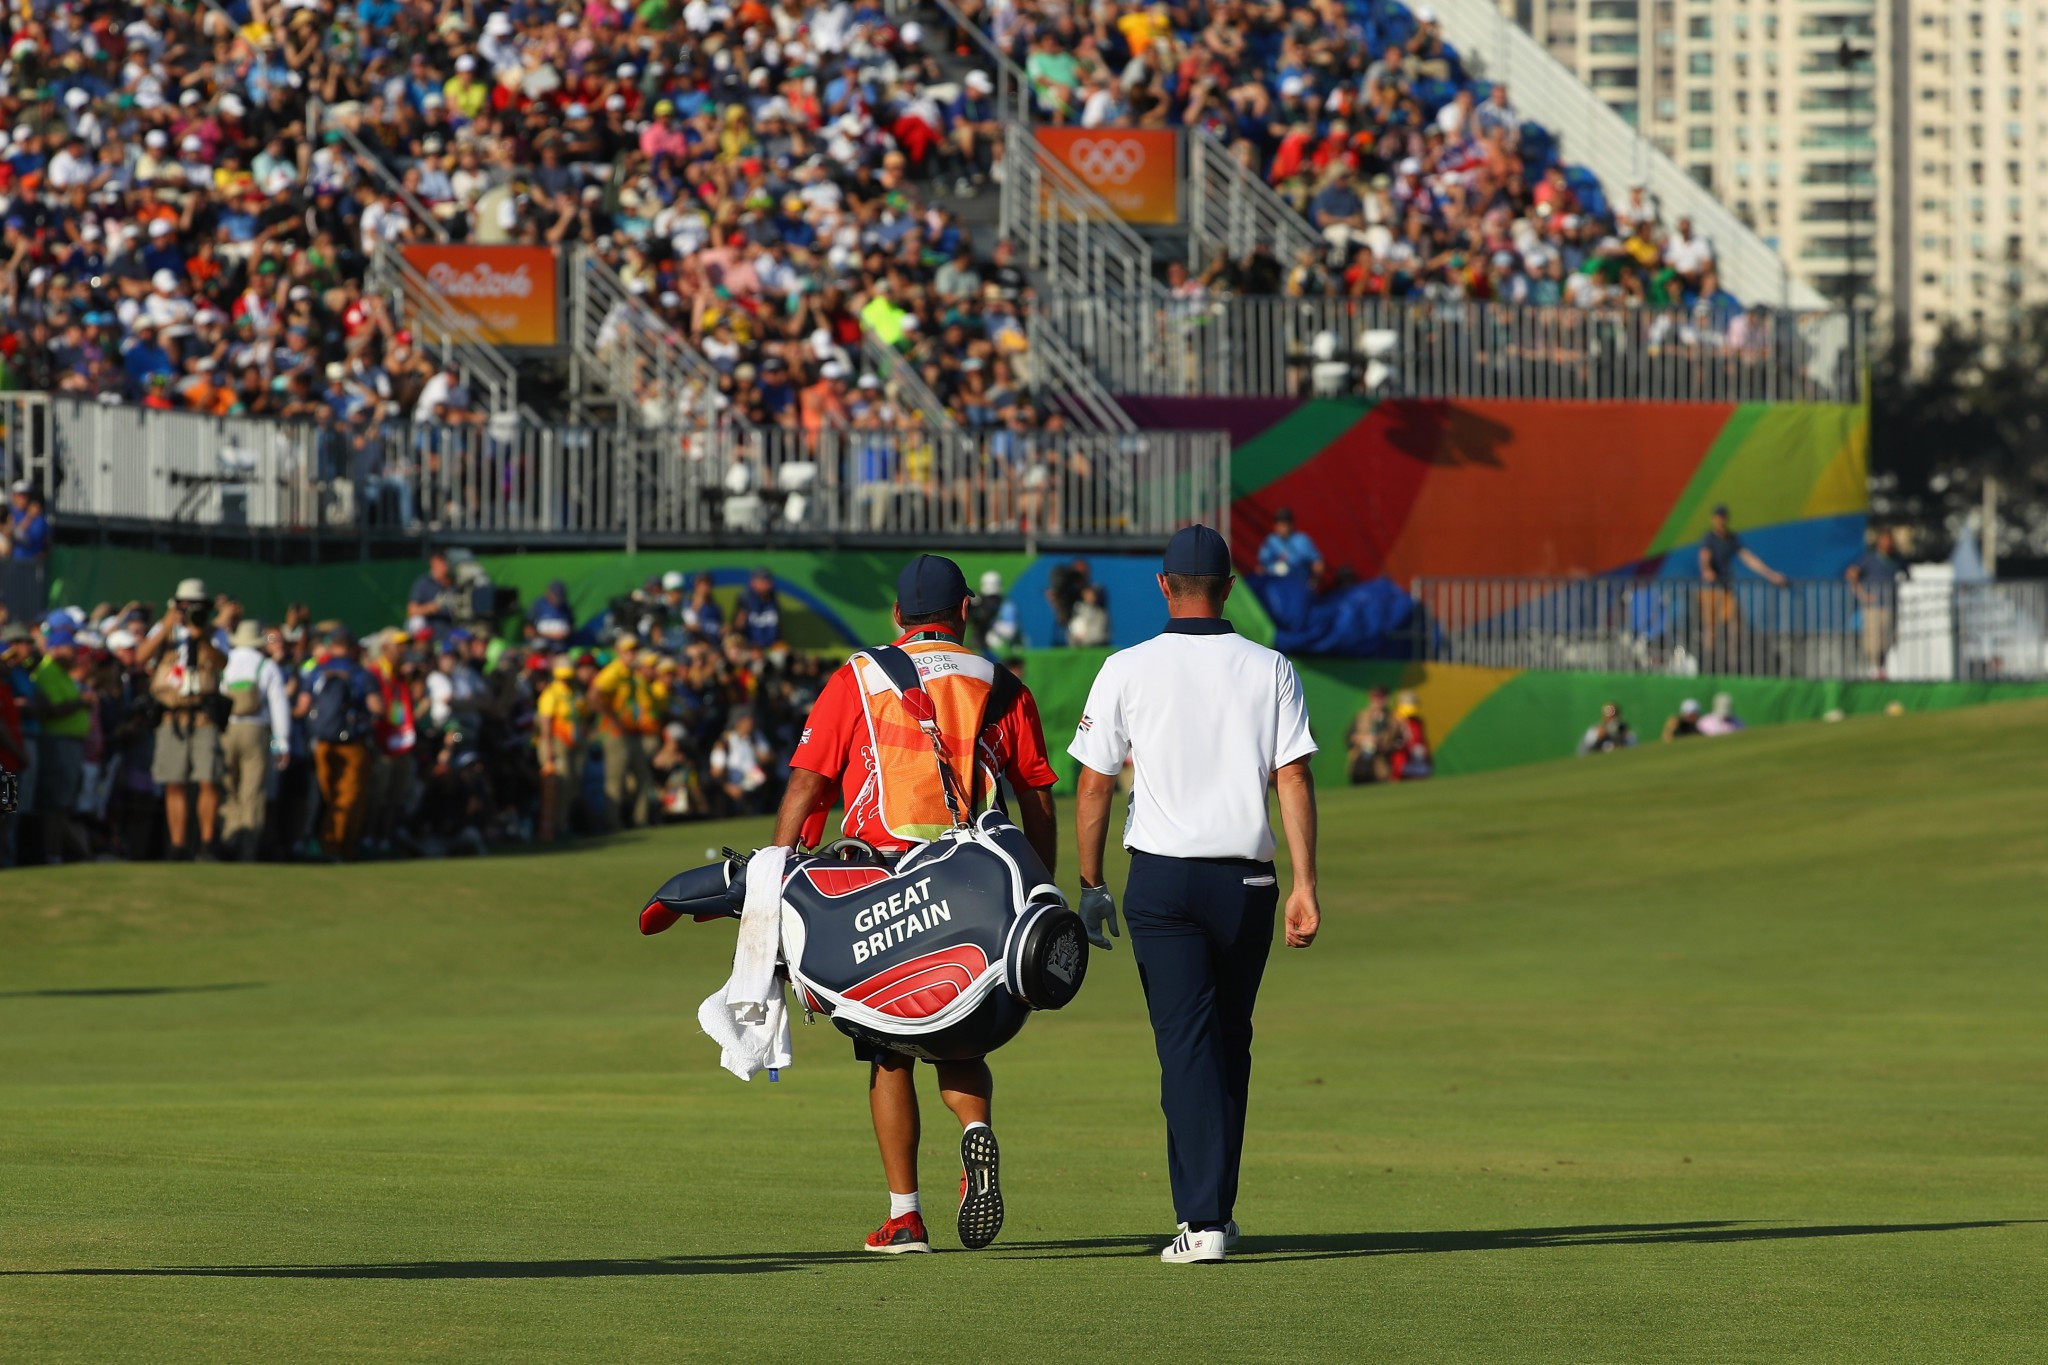 Britain's Justin Rose won the golf at Rio 2016, a thrilling event missing some top players ©Getty Images